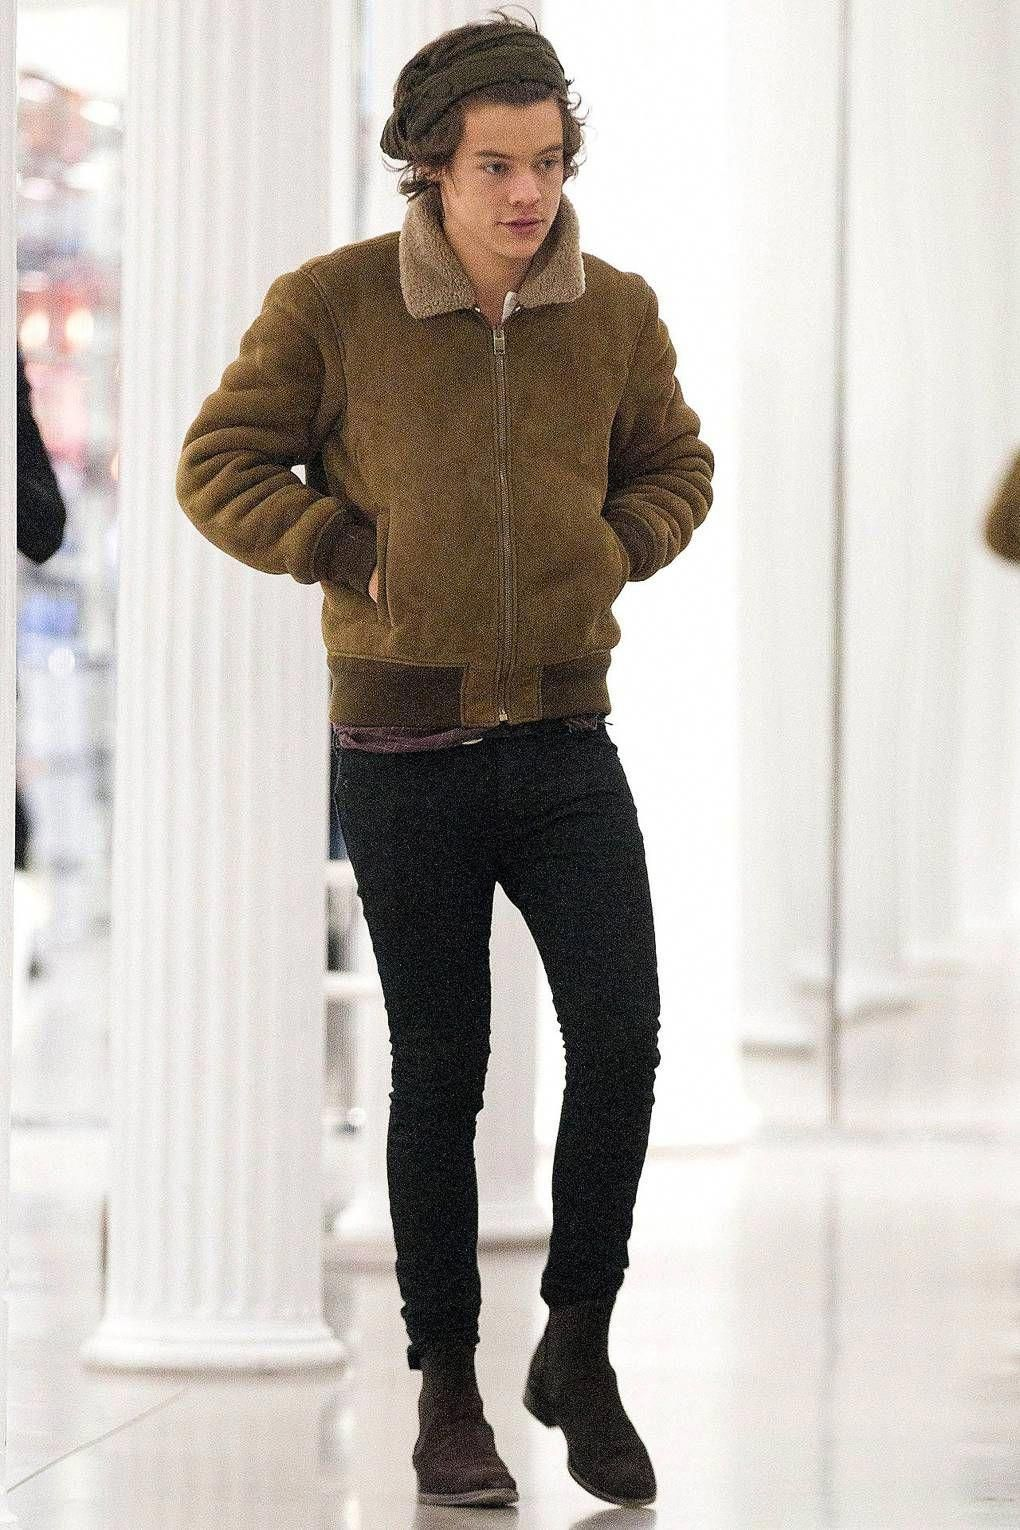 Pin By Alvarito On Outfits Con Cosillas Que Ya Tengo In 2020 Harry Styles Chelsea Boots Mens Outfits Boots Outfit Men